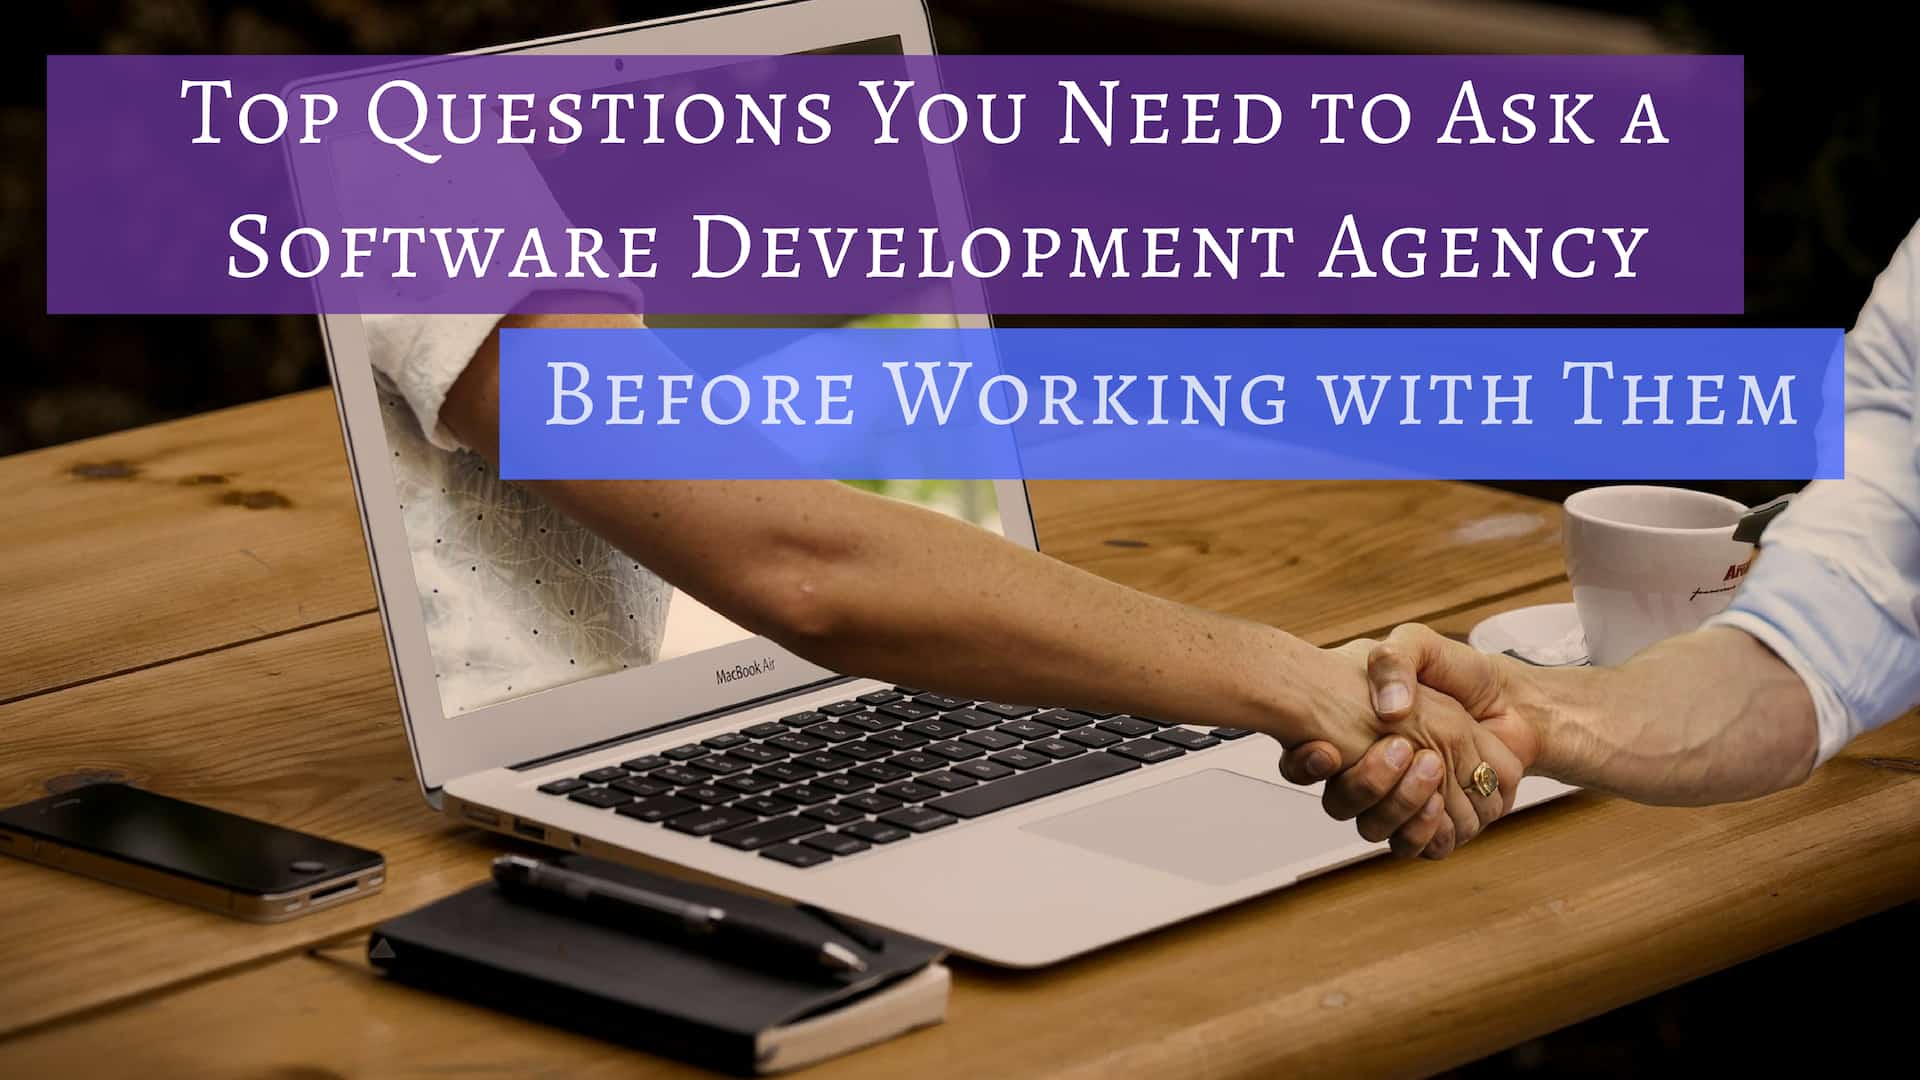 Top Questions You Need To Ask A Software Development Agency Before Working With Them